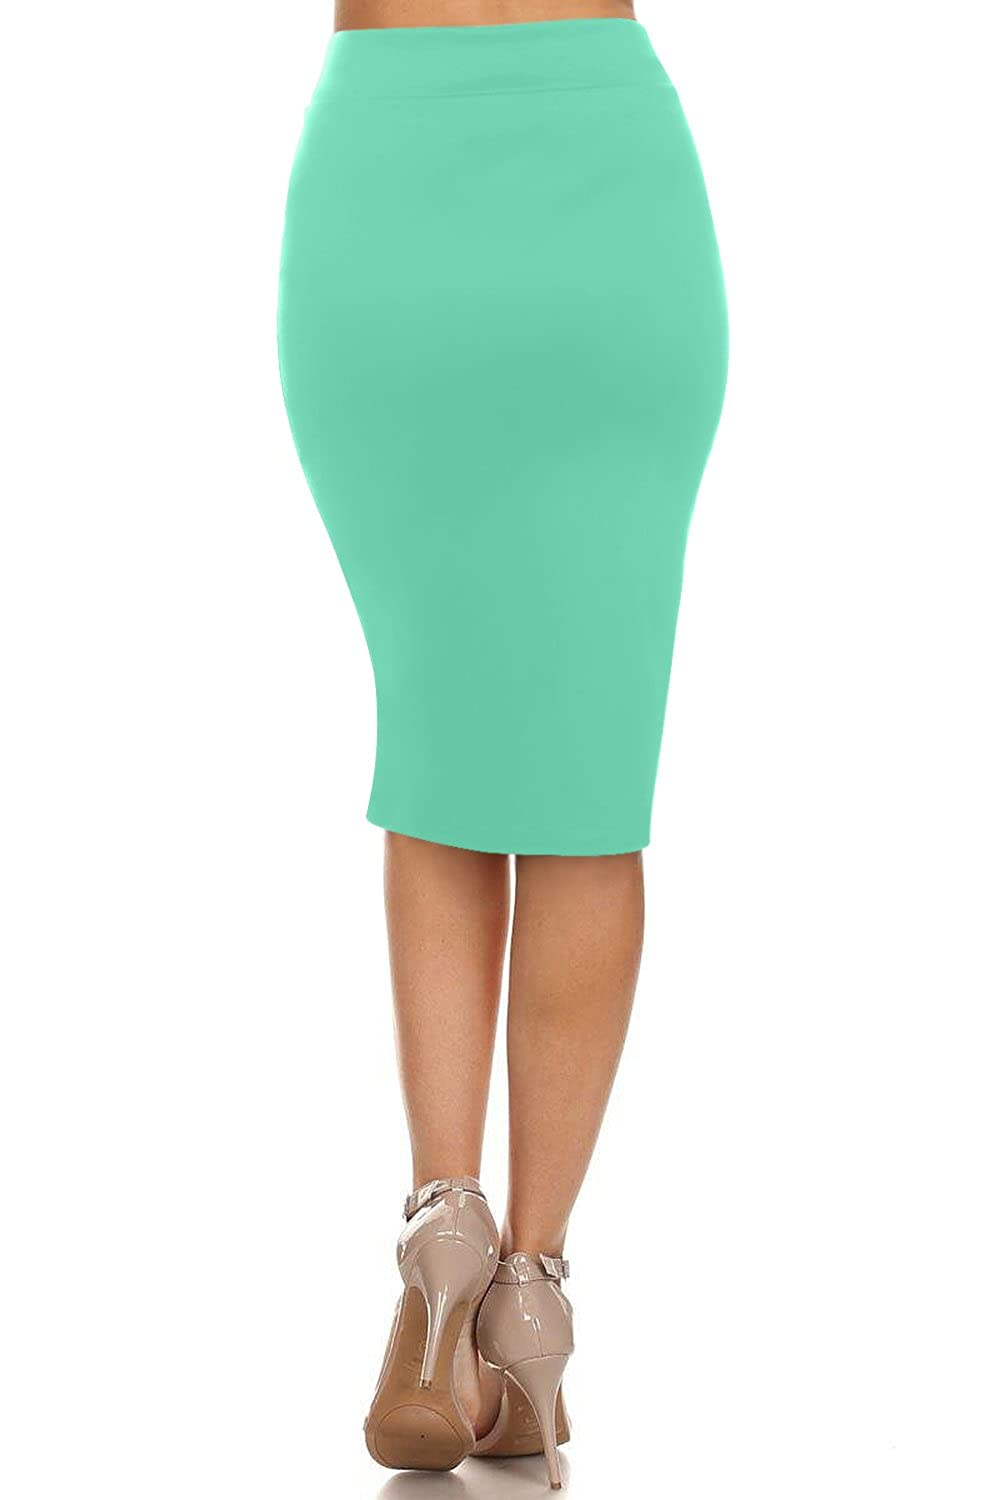 Made in USA Womens Below The Knee Pencil Skirt for Office Wear